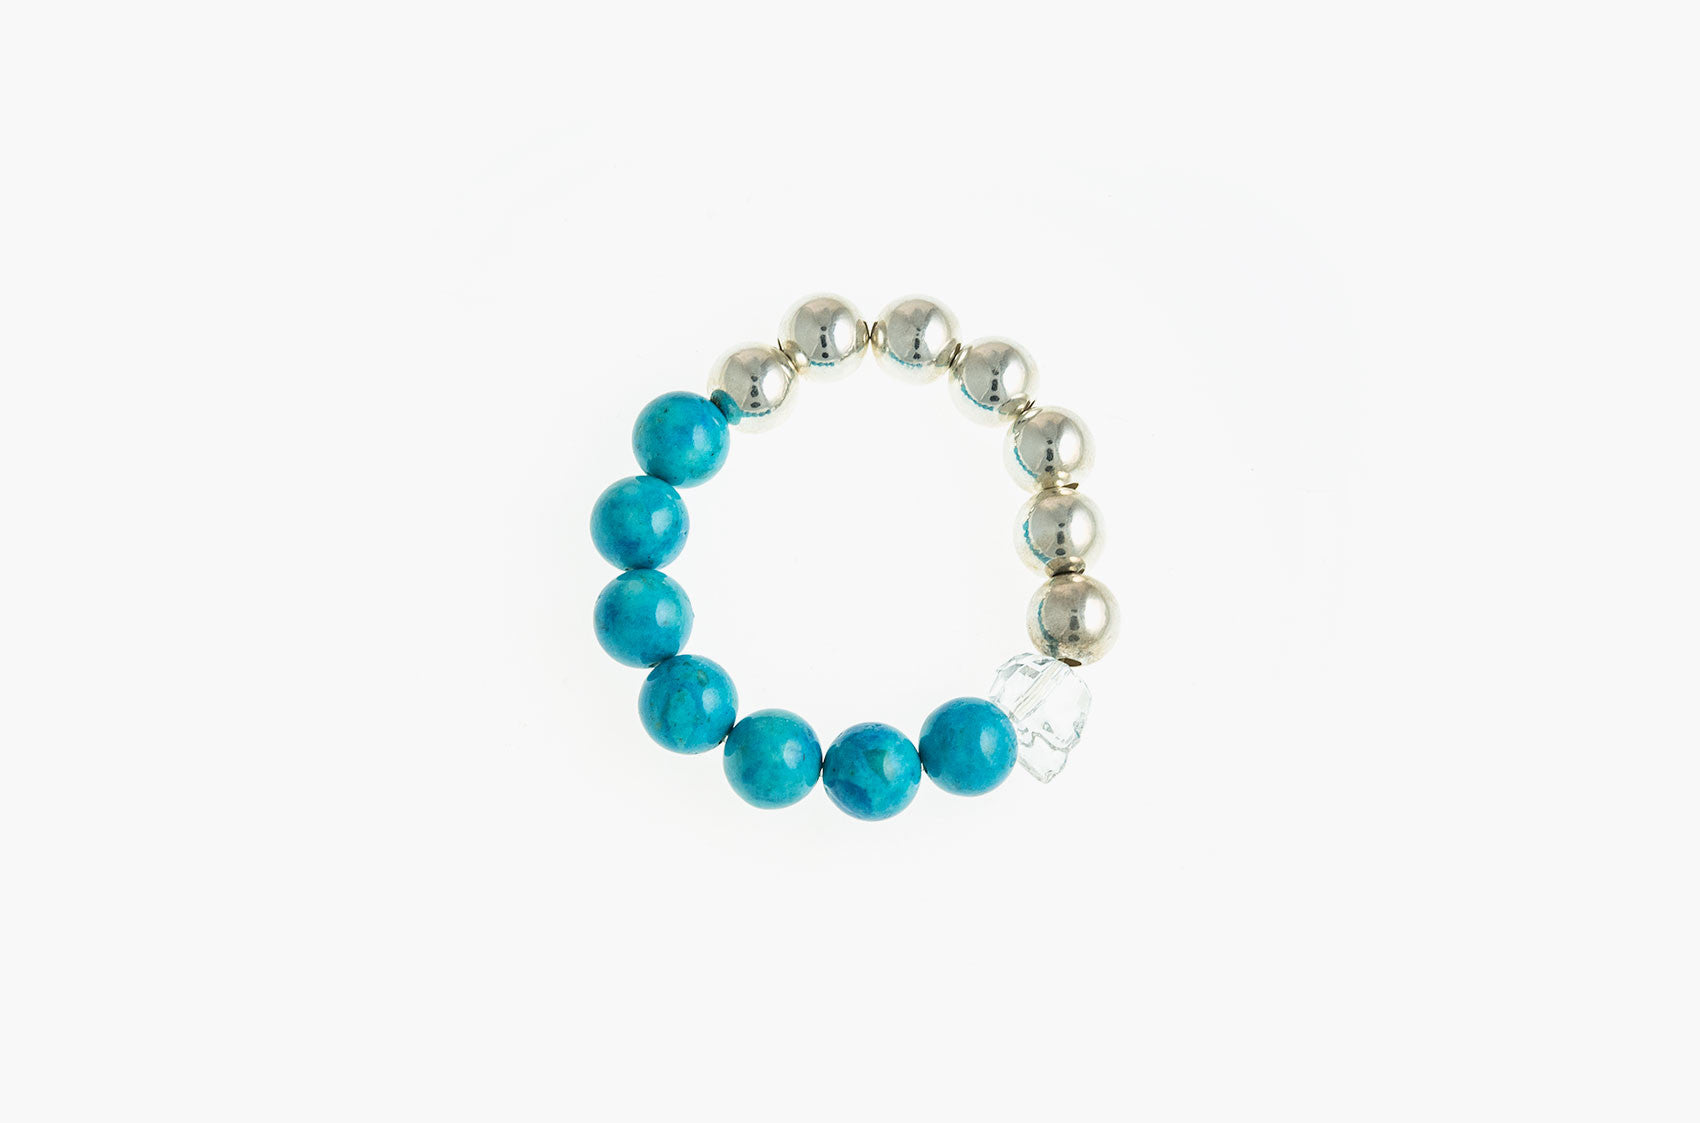 Silver & Stone. Turquoise, crystal and silver bracelet